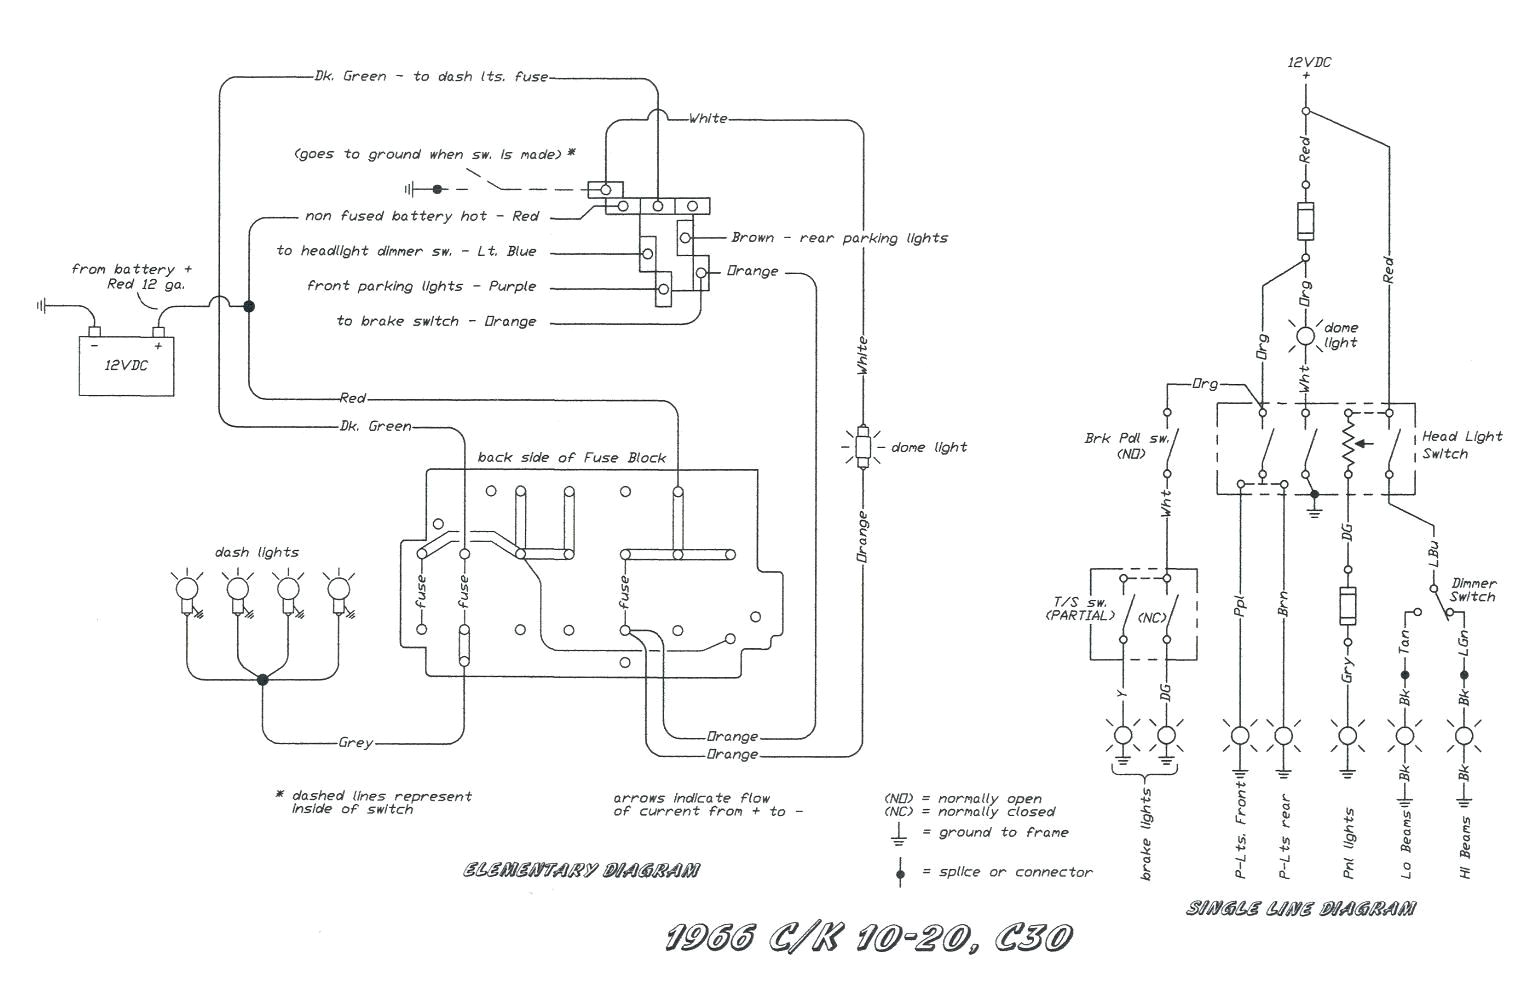 Wiring Diagram for Headlight Switch 1954 Gm Headlight Switch Wiring Diagram Wiring Diagram Expert